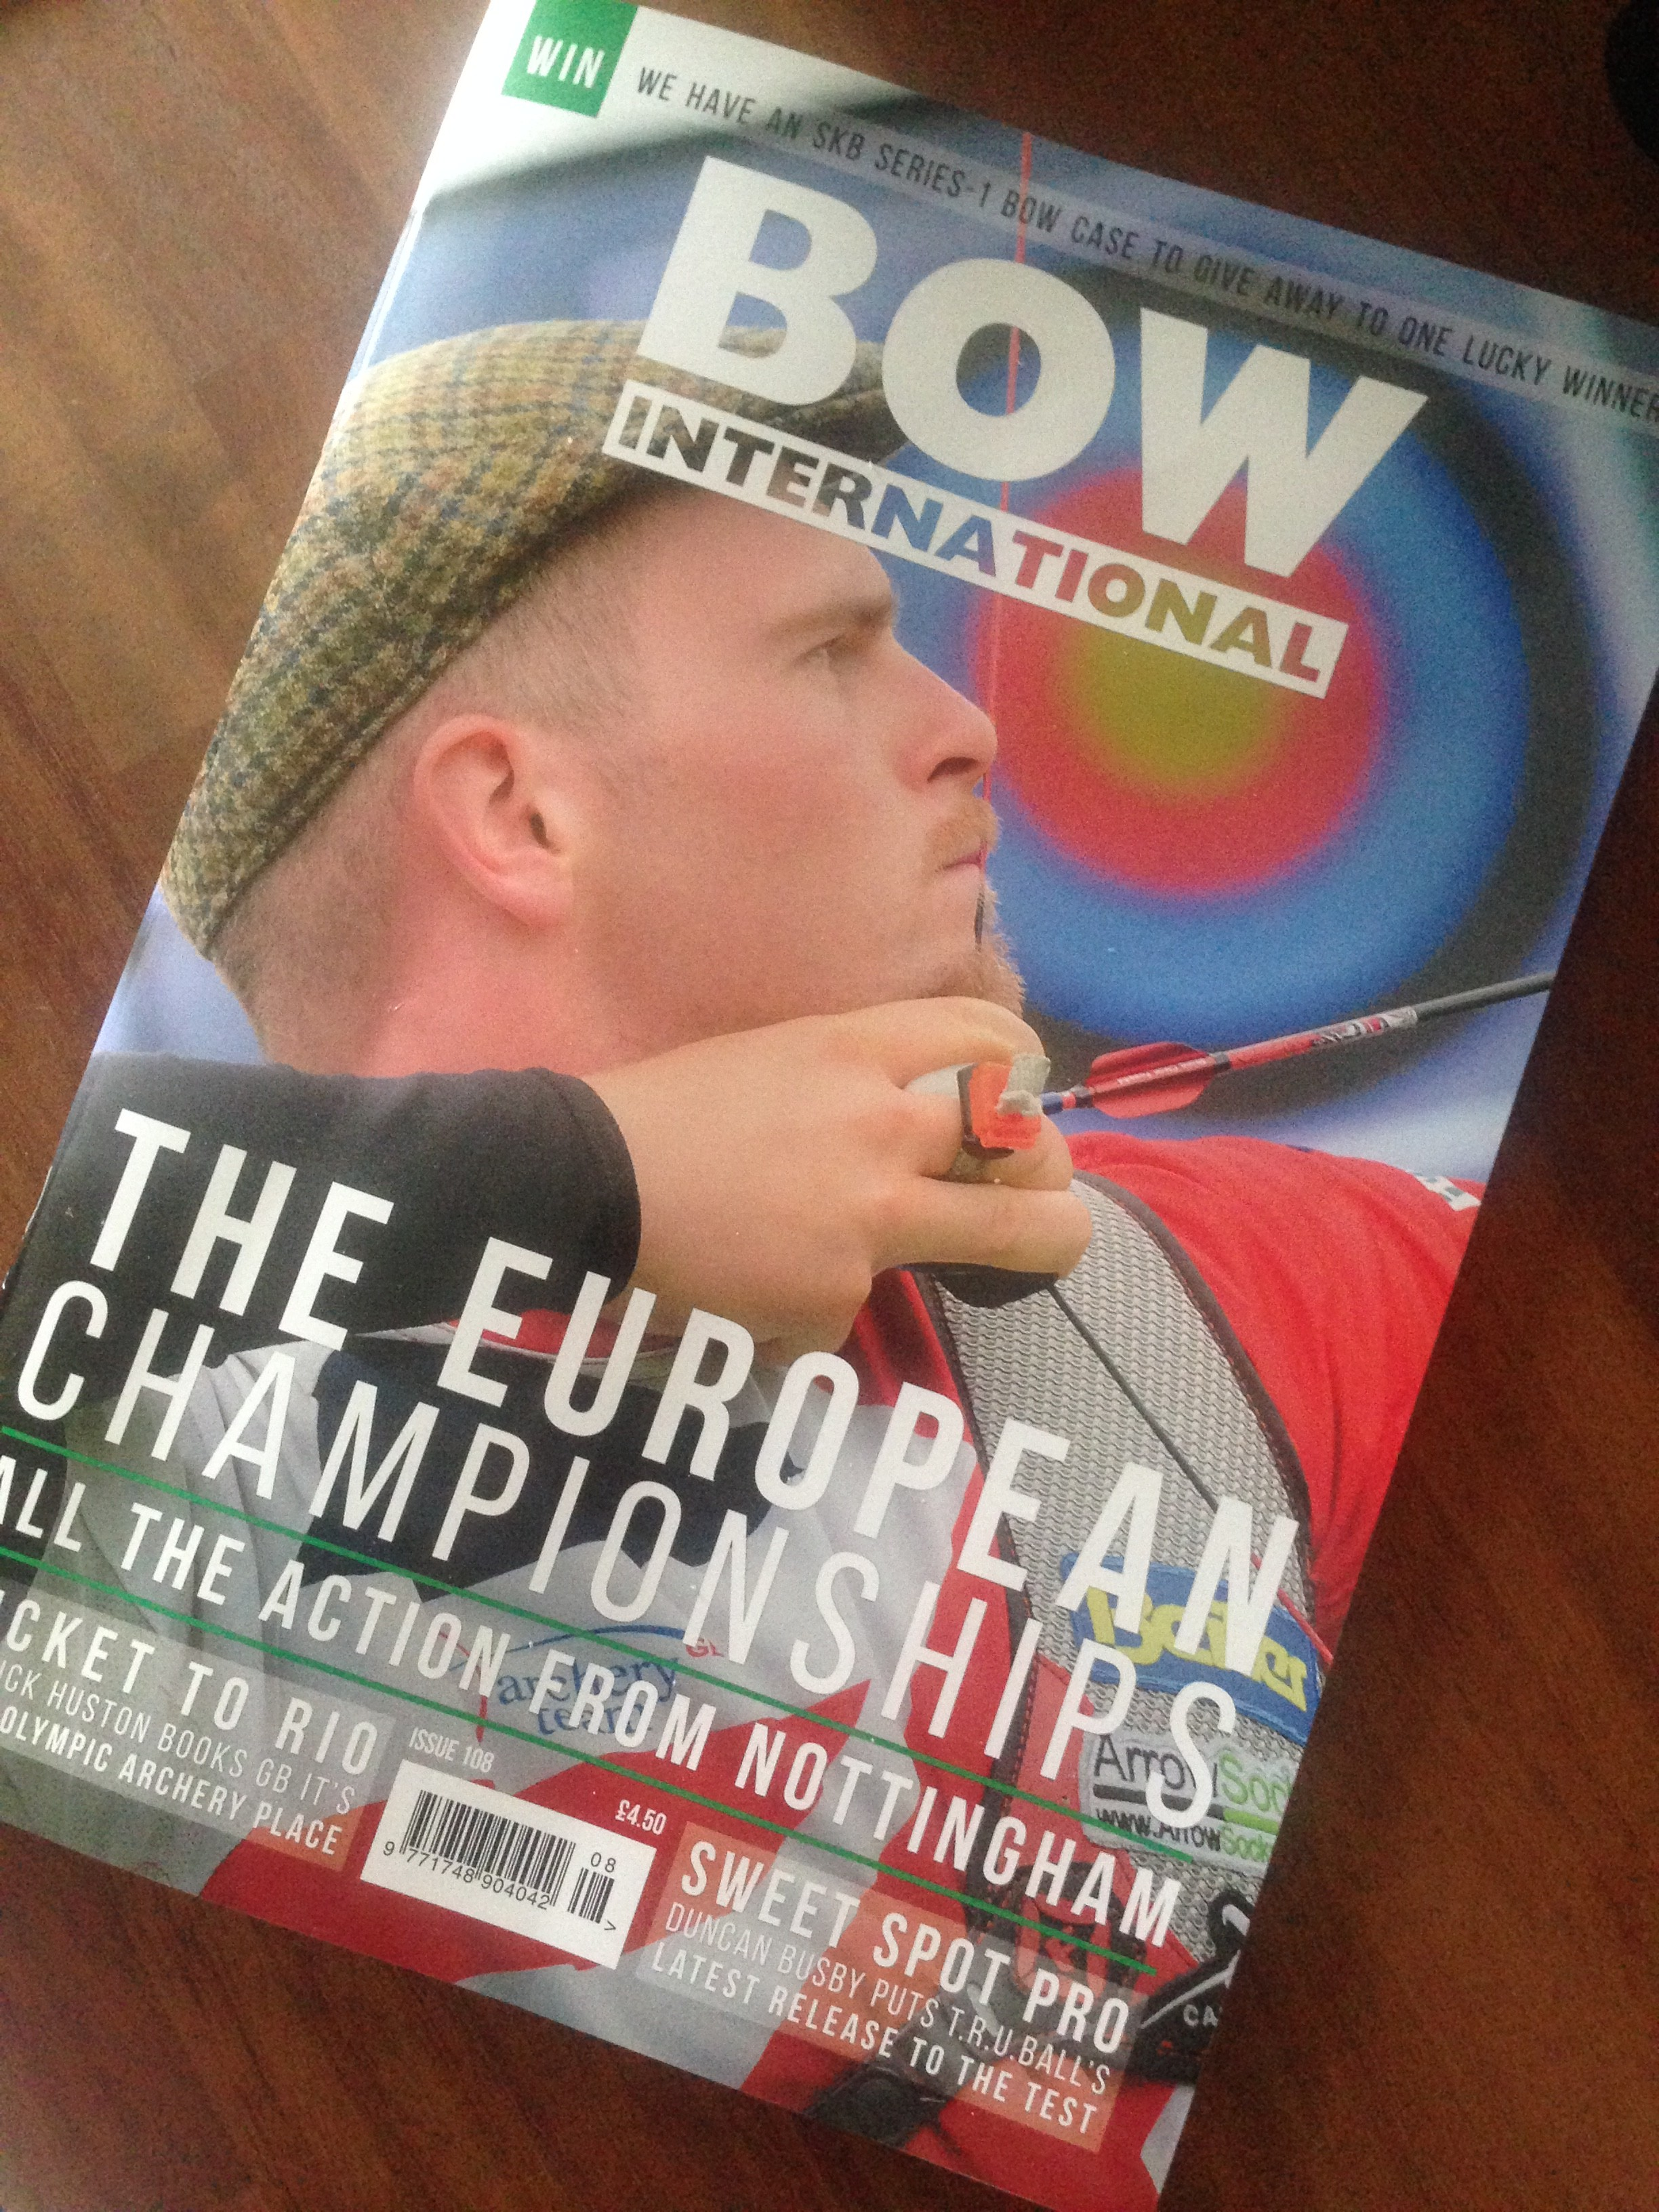 It S Available In Better Stocked Newsagents Or You Can And Read Digitally On A Phone Tablet Too Search For Bow International Your App